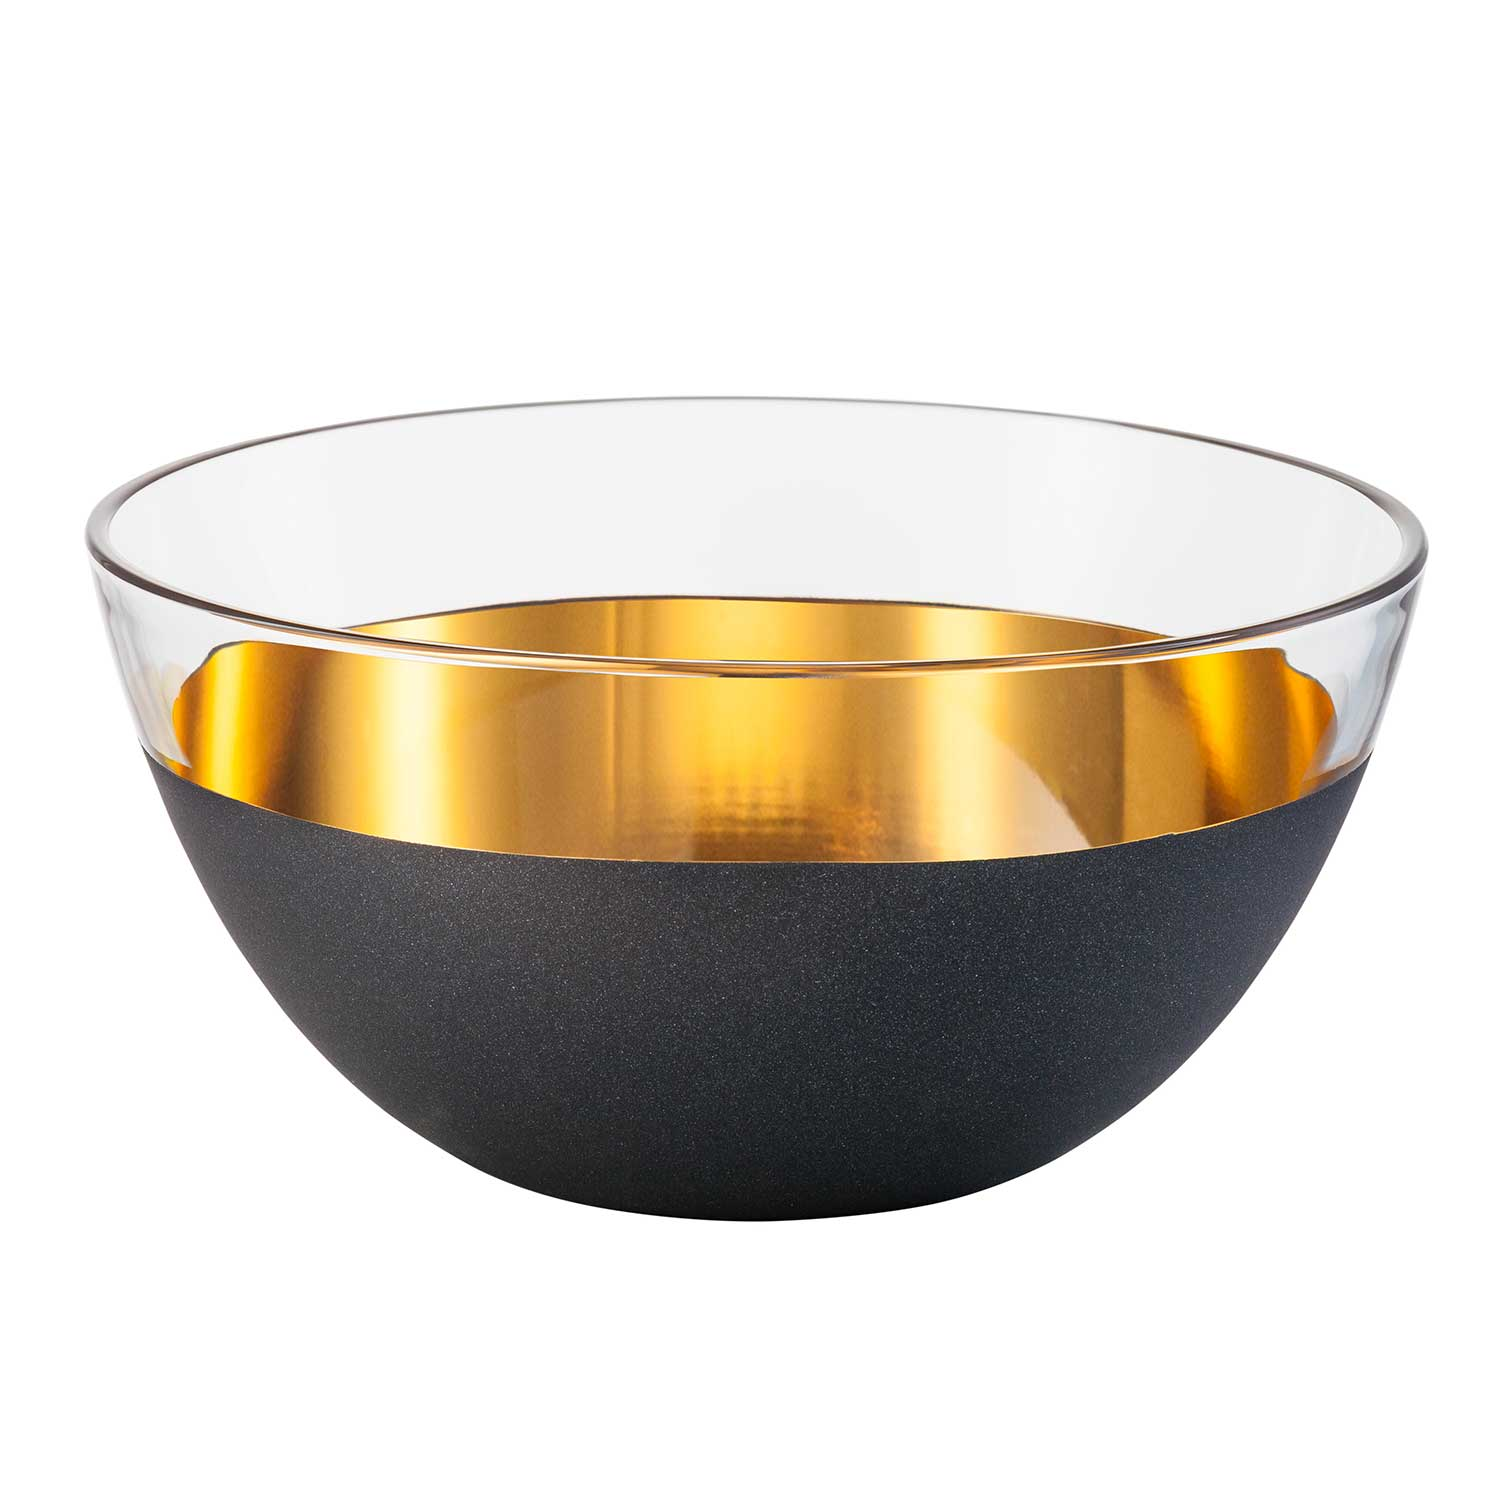 COSMO GOLD bowl large